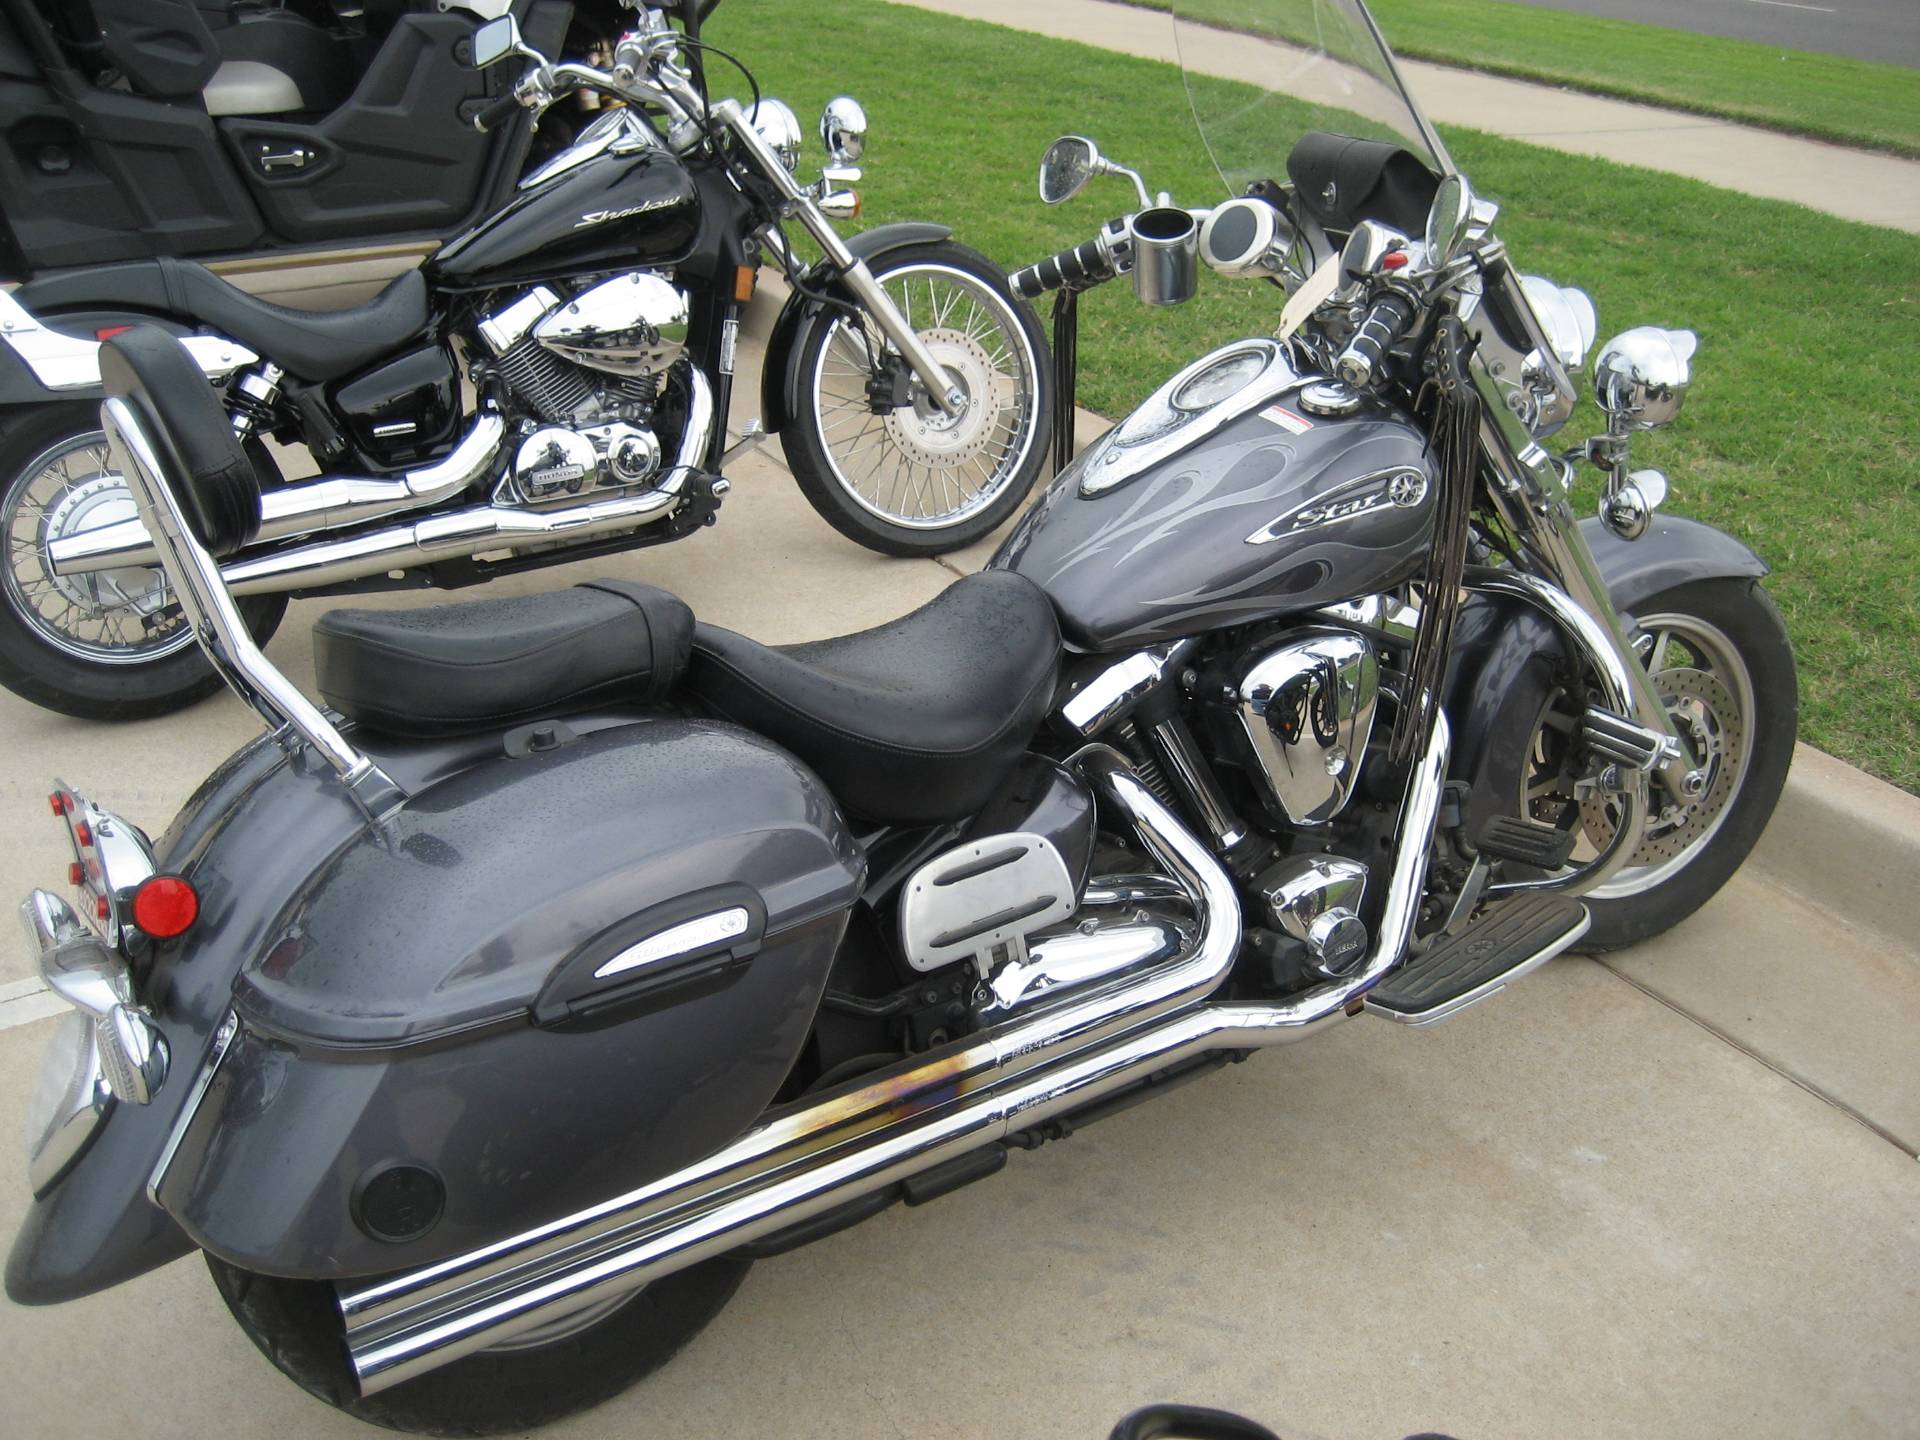 2008 Yamaha Road Star S in Shawnee, Oklahoma